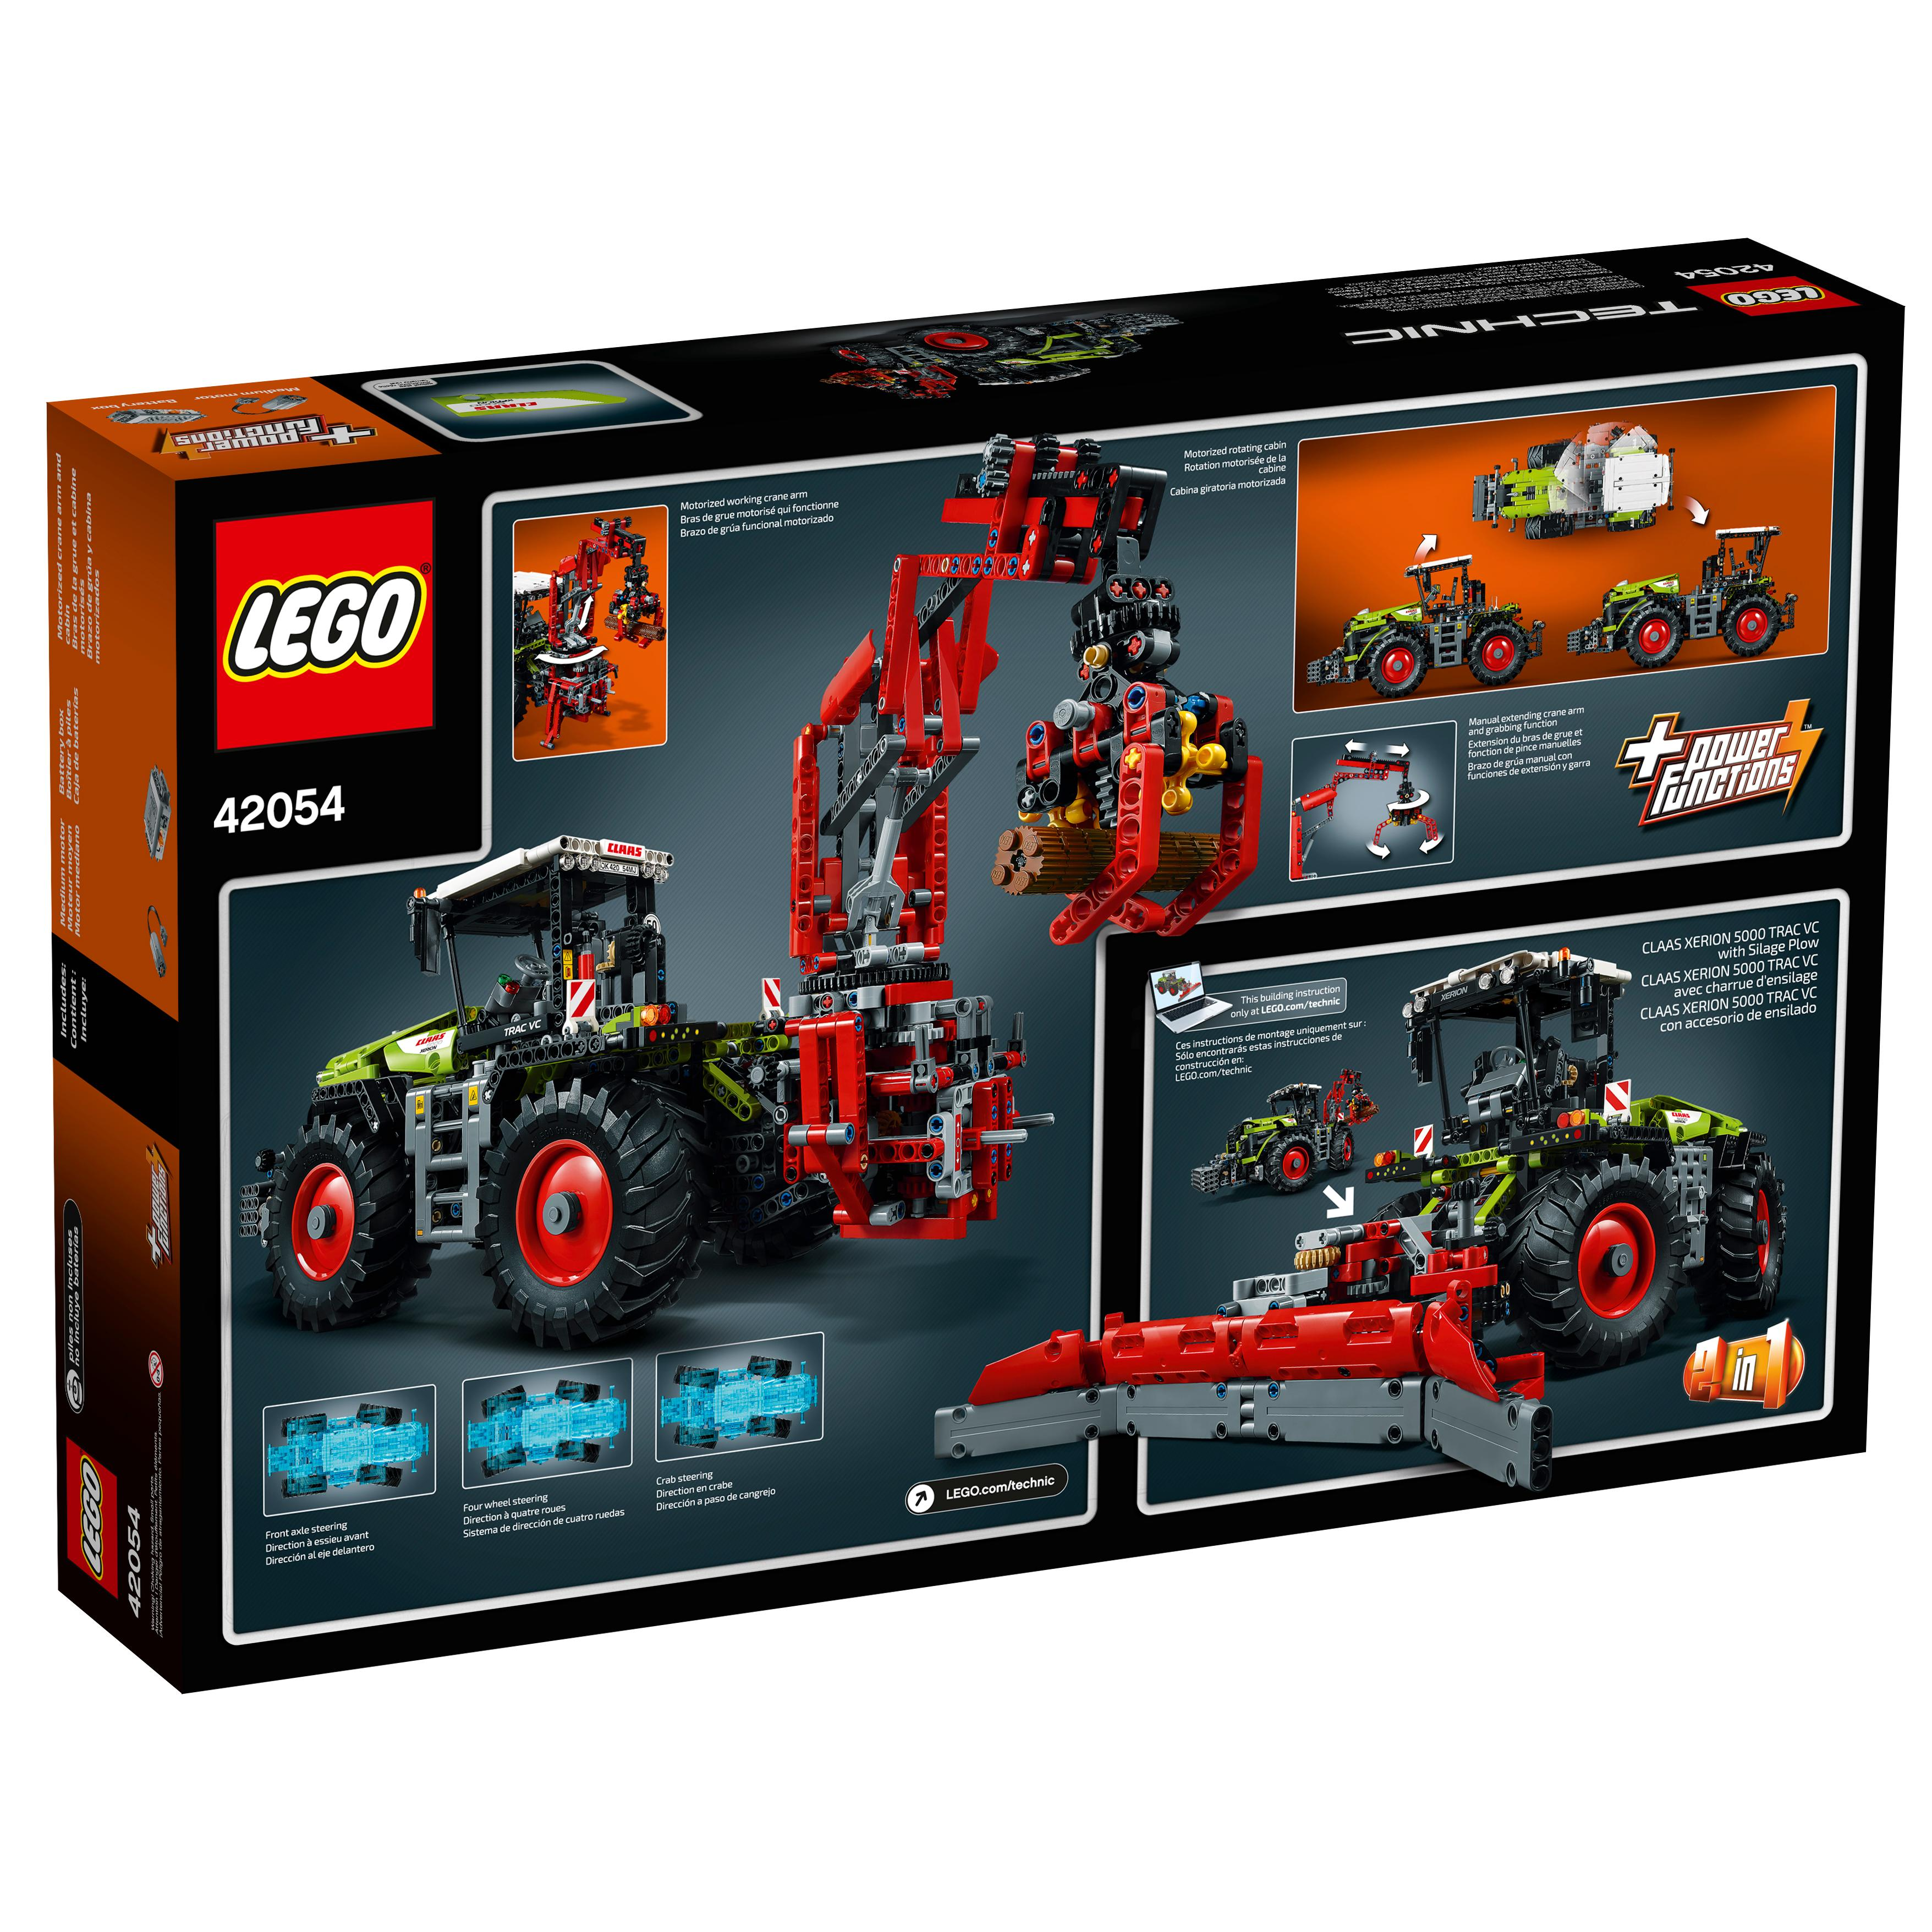 lego technic claas xerion 5000 trac vc 42054 advanced building set toys games. Black Bedroom Furniture Sets. Home Design Ideas